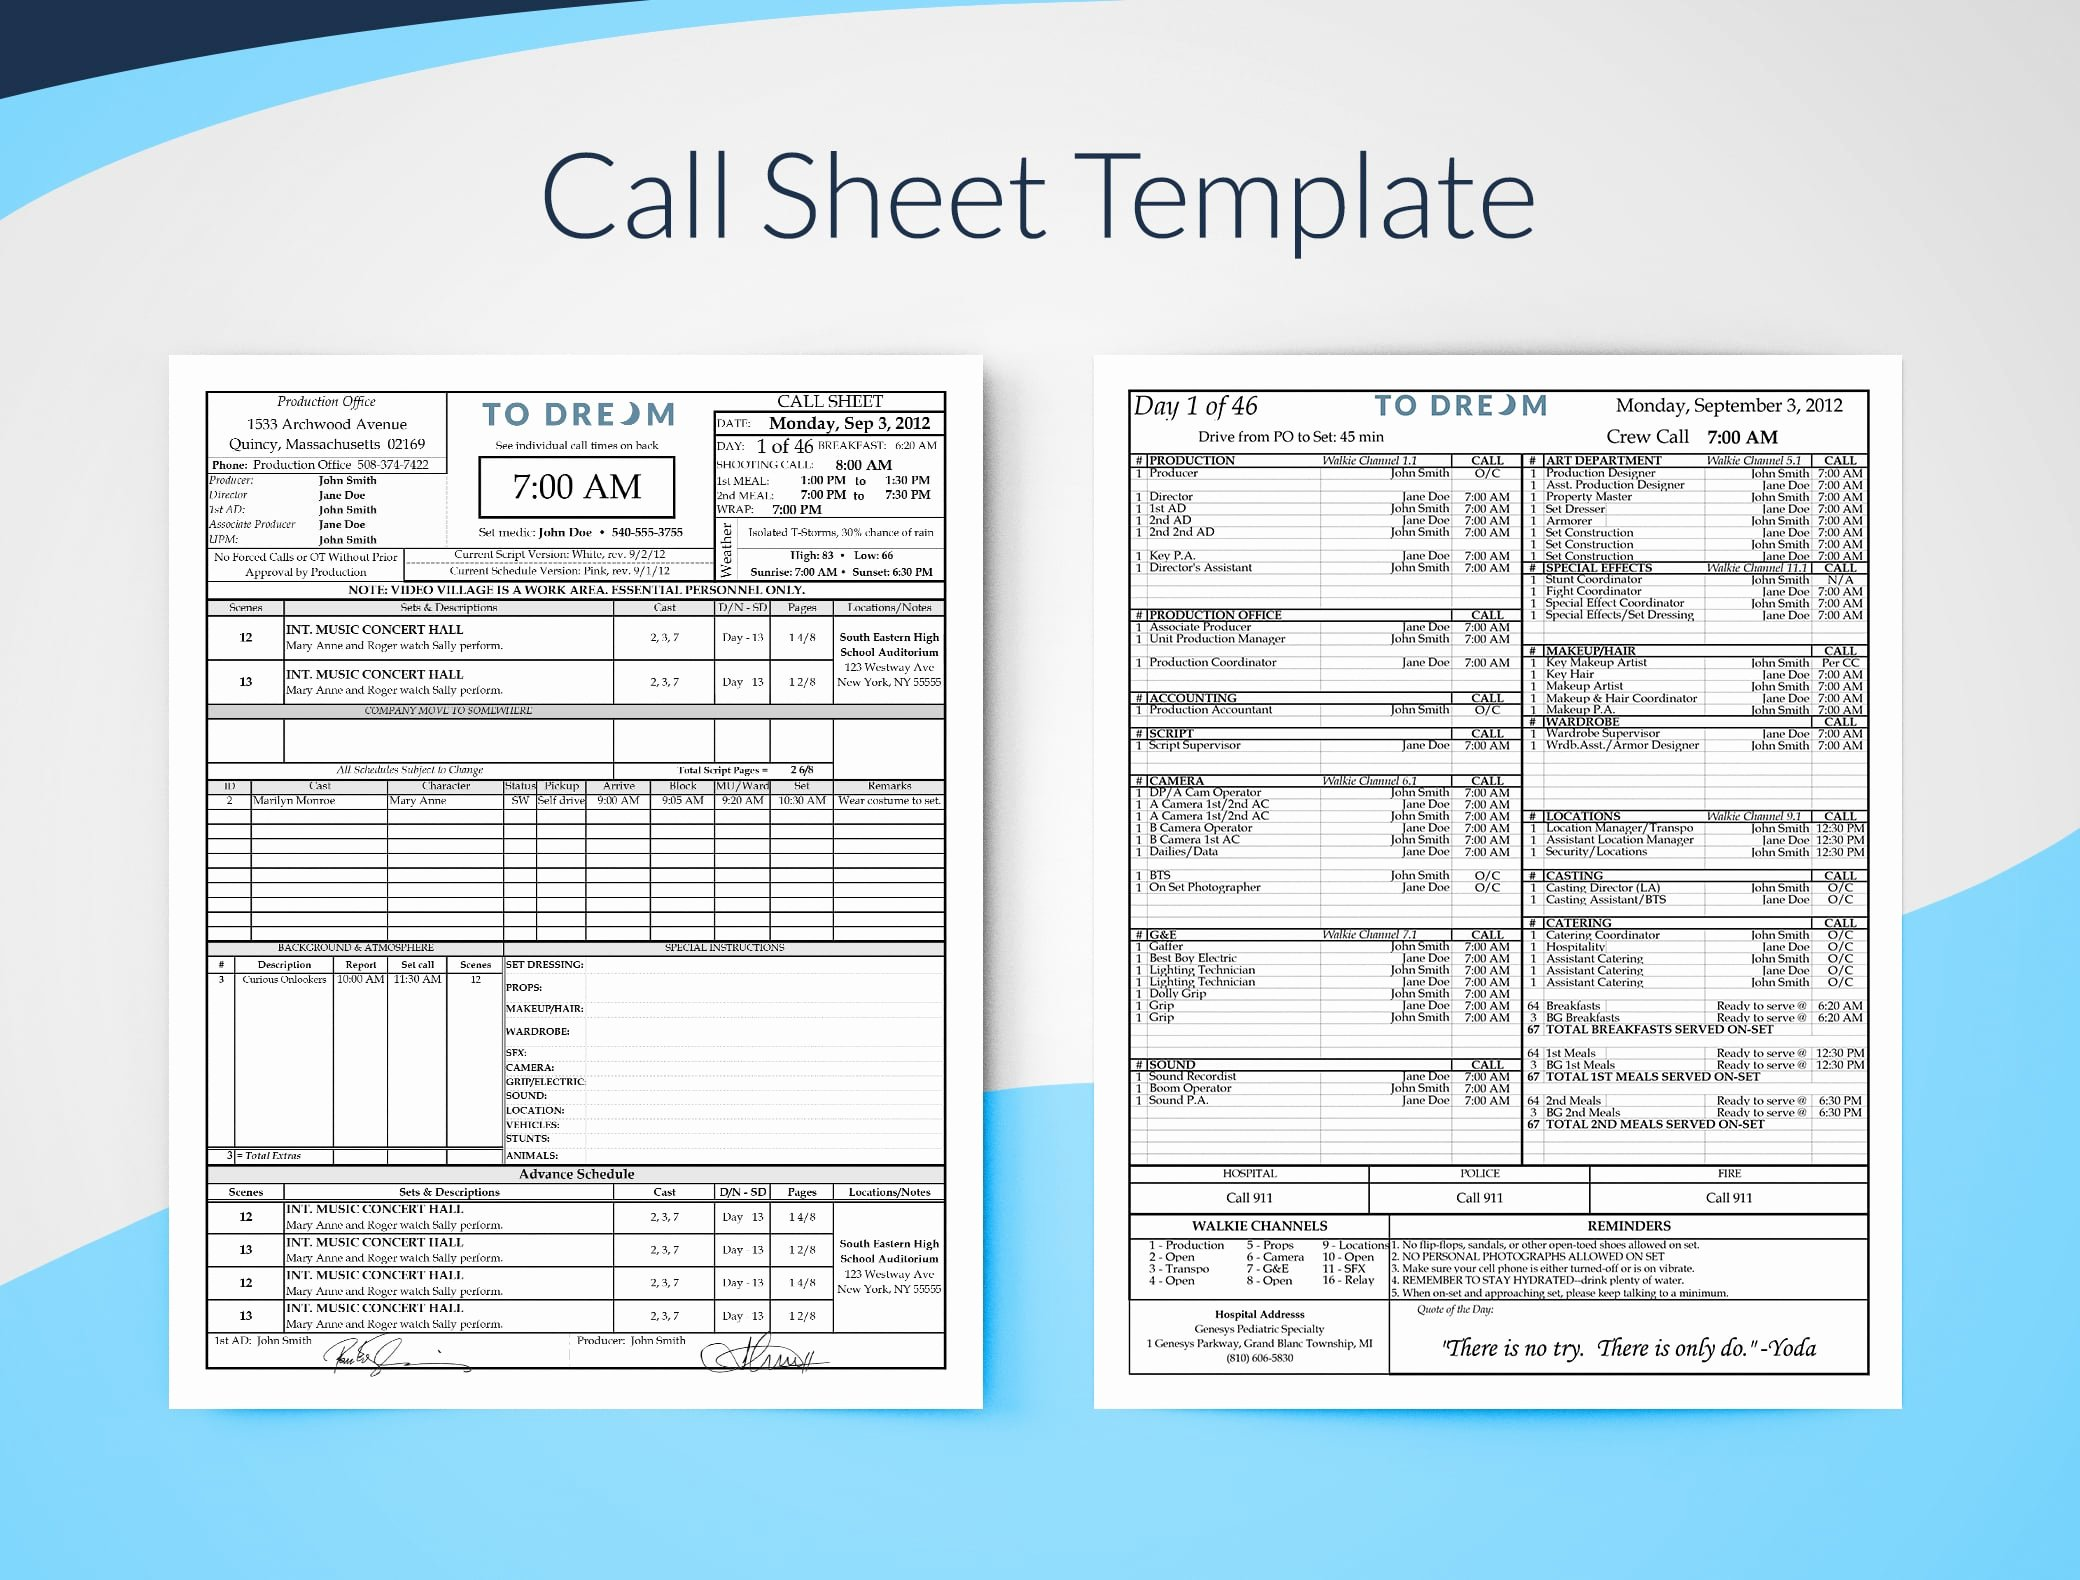 Call Sheet Template Excel Best Of Call Sheet Template for Excel Free Download